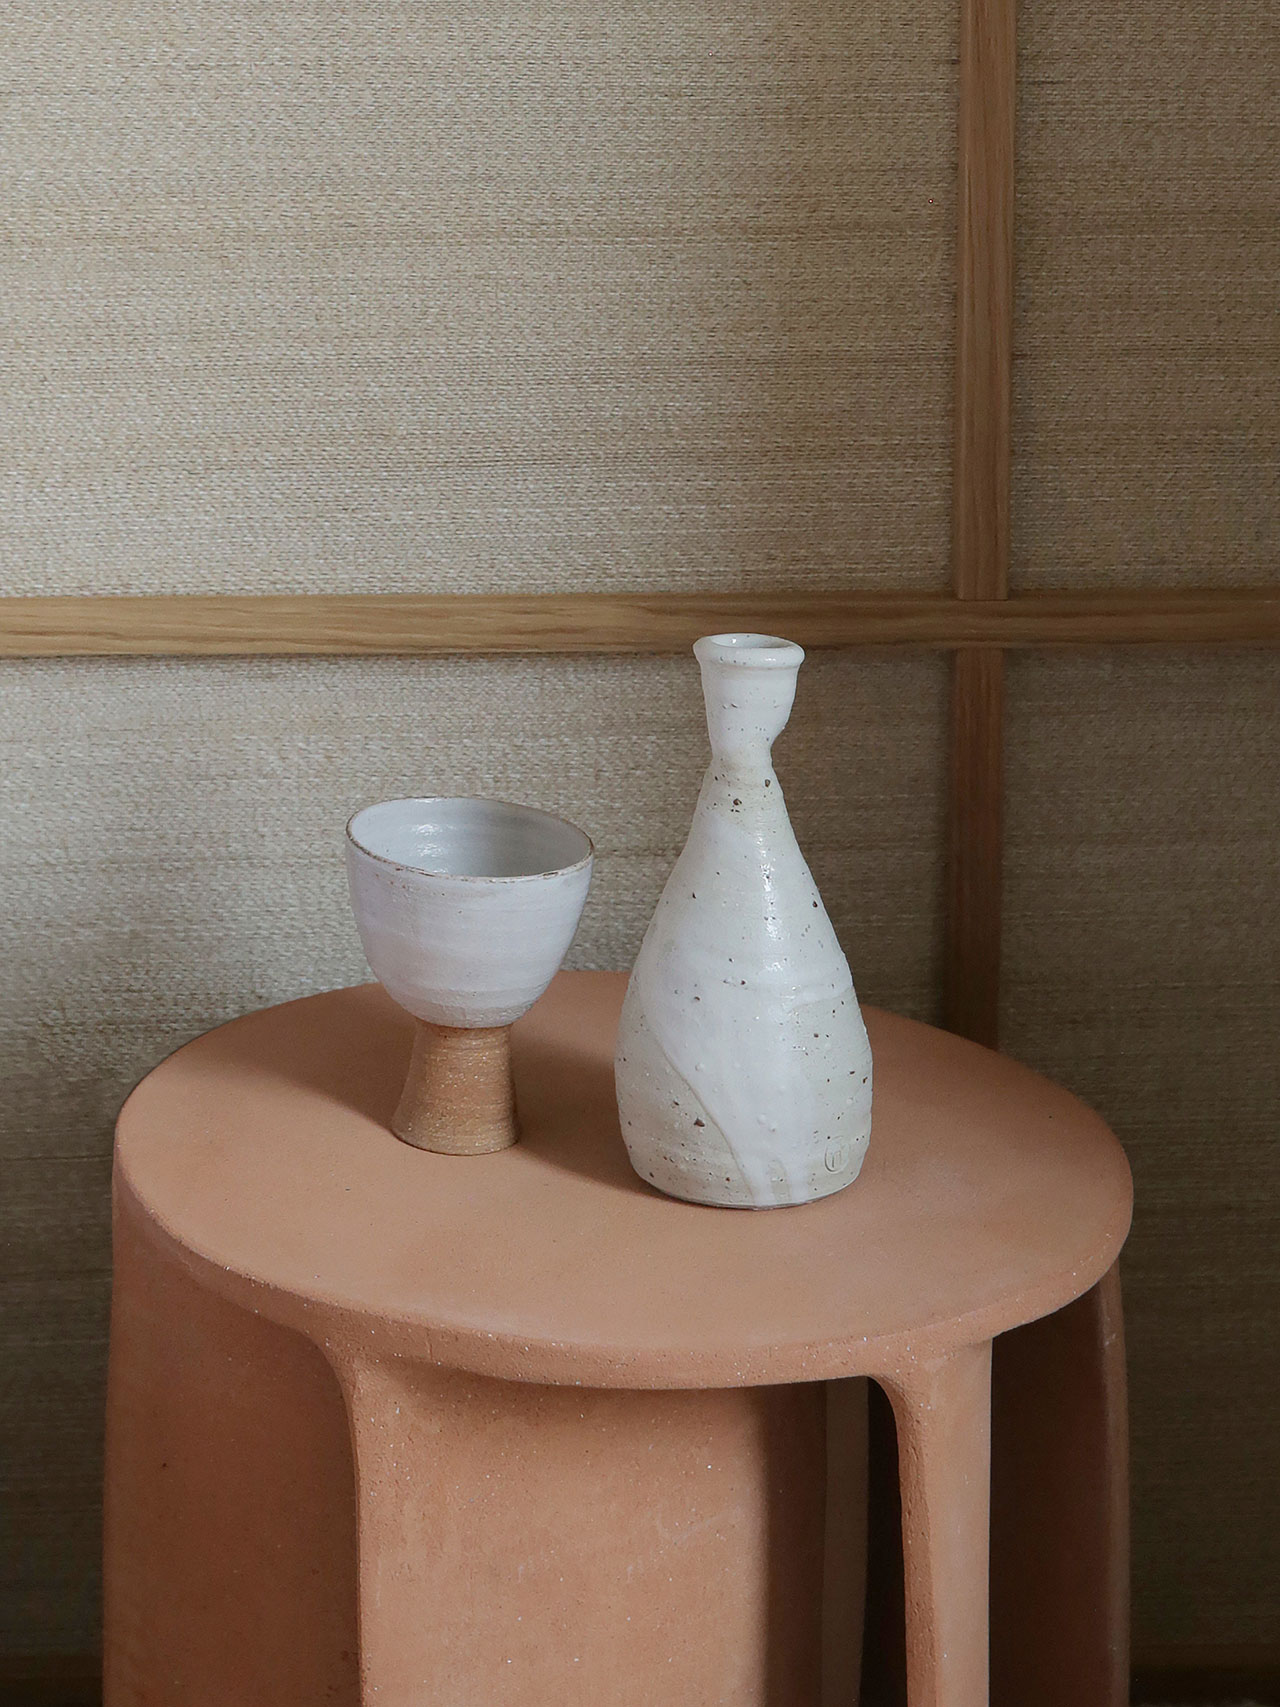 Illuminated side table in in earthware by Guy Bareff. Ceramics byMarie Lautrou. Photography by Damien de Medeiros.